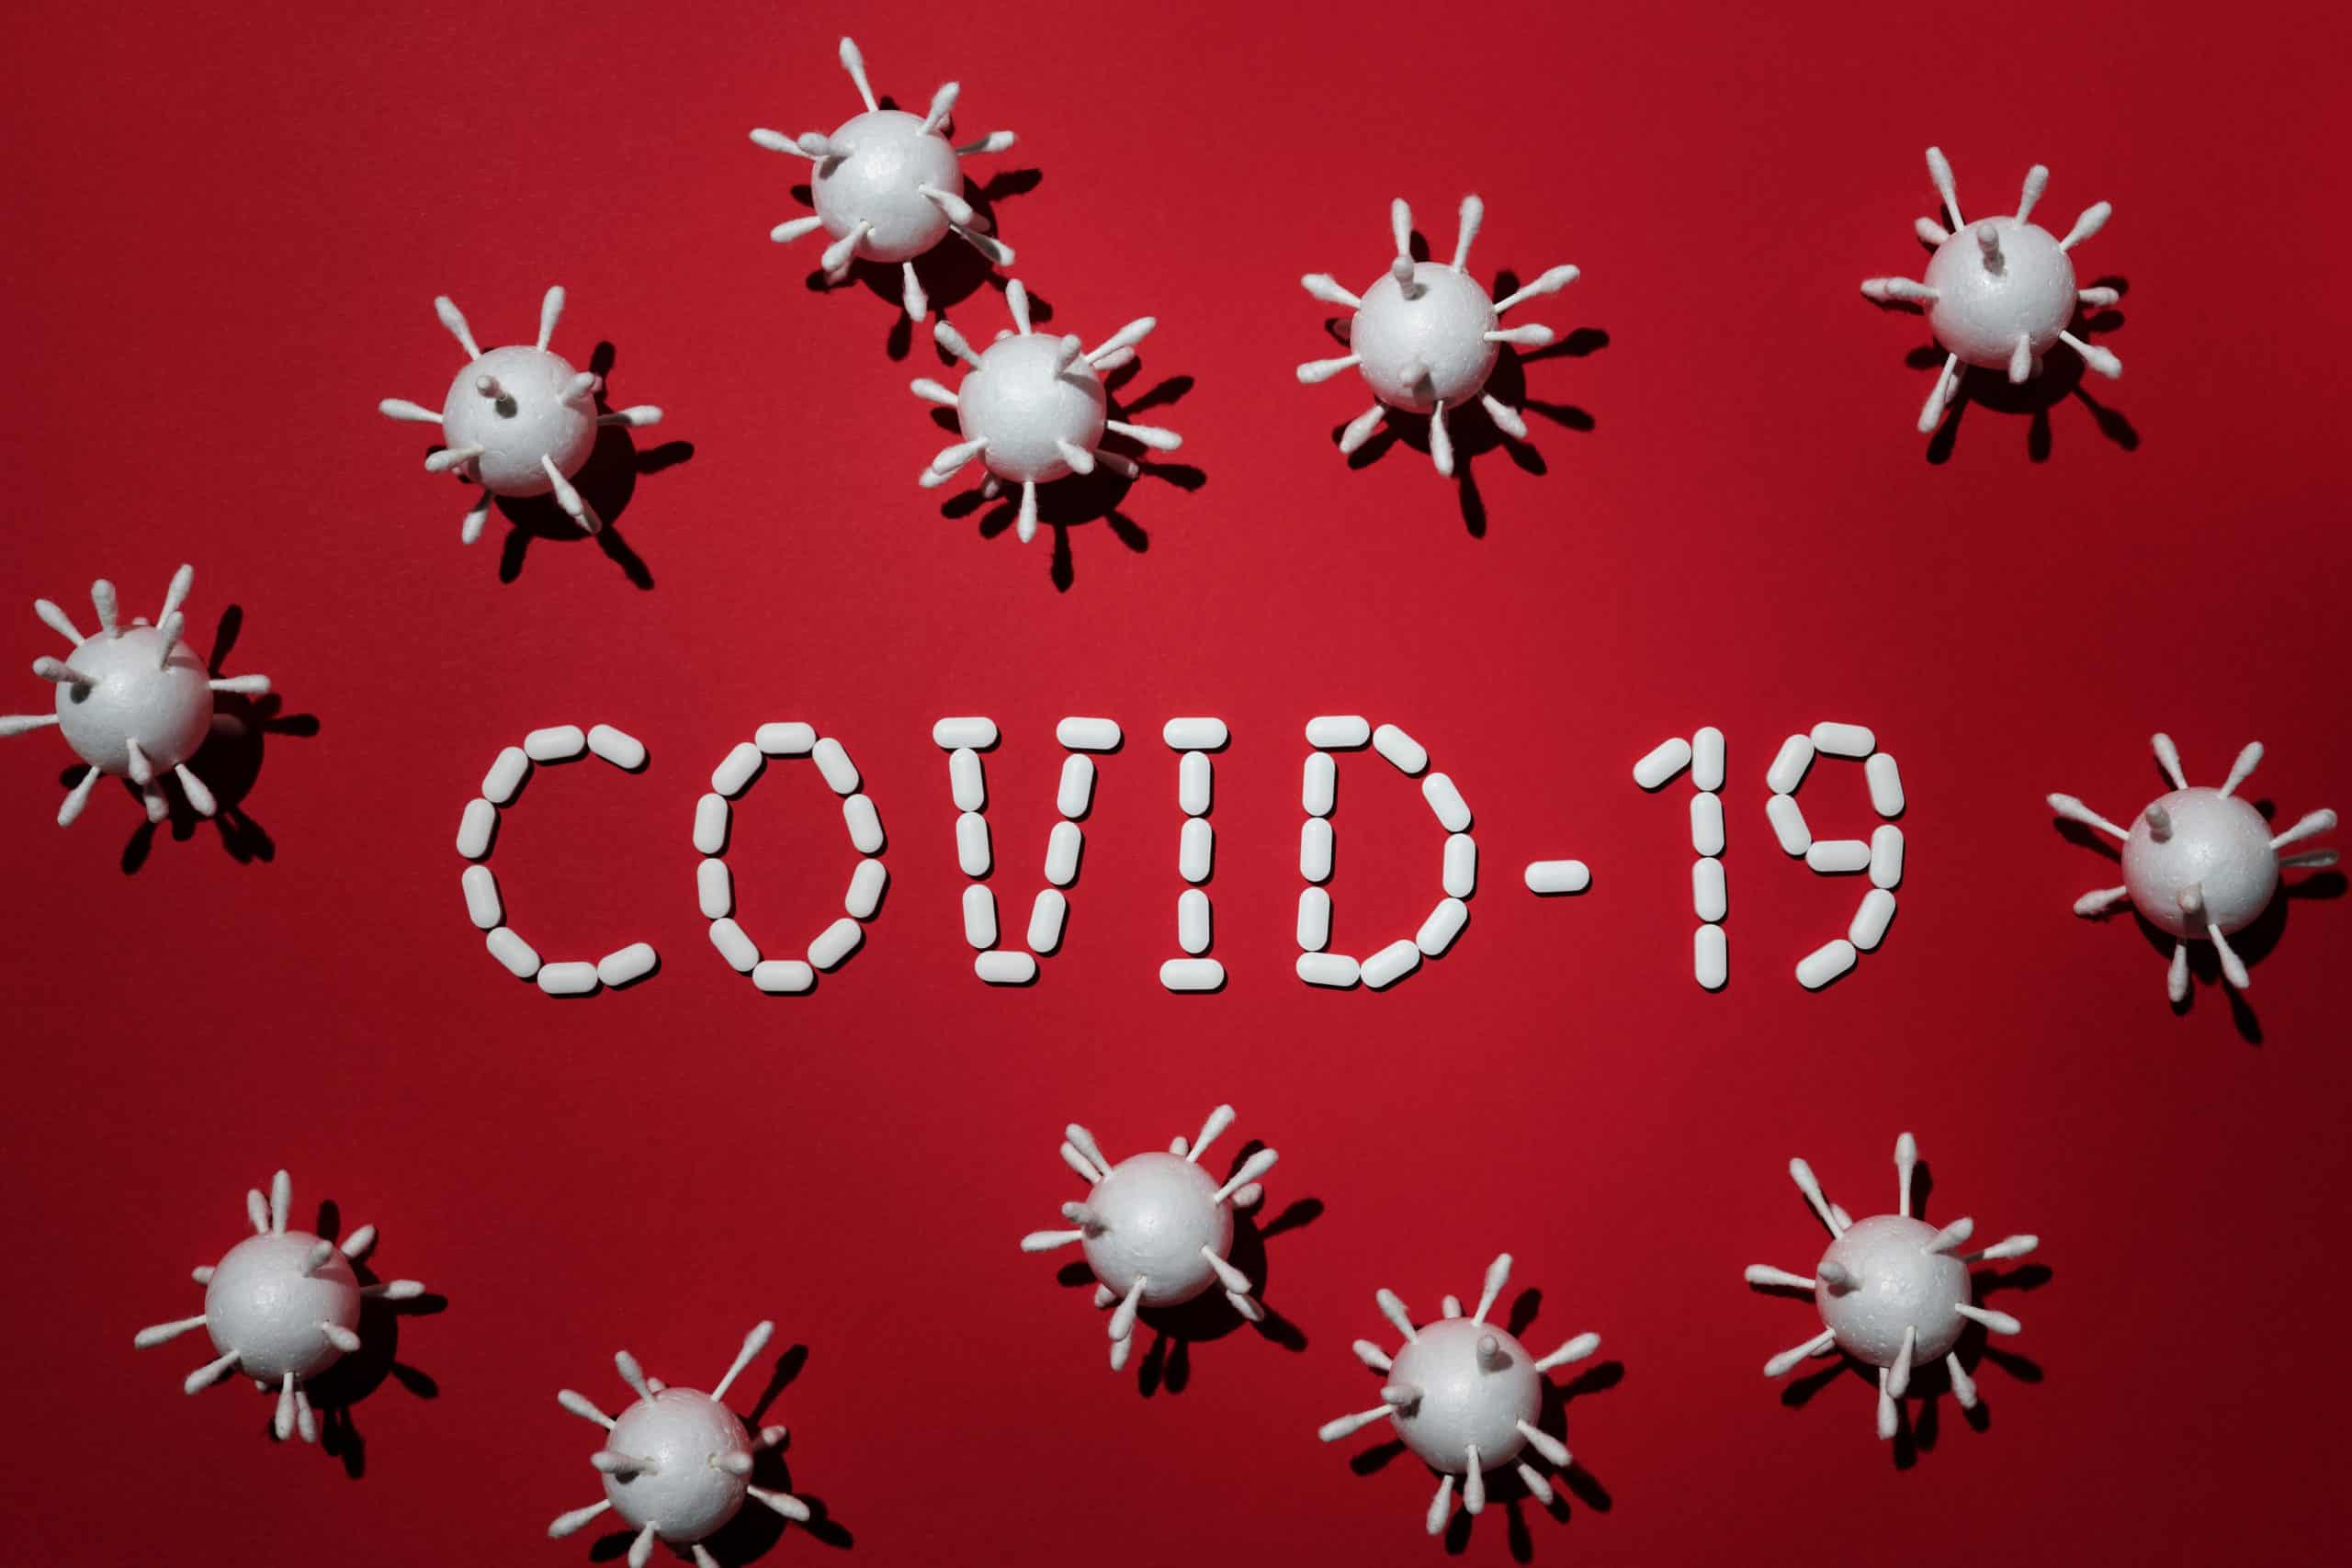 Treat Mild COVID-19 Symptoms: Treating Yourself At Home